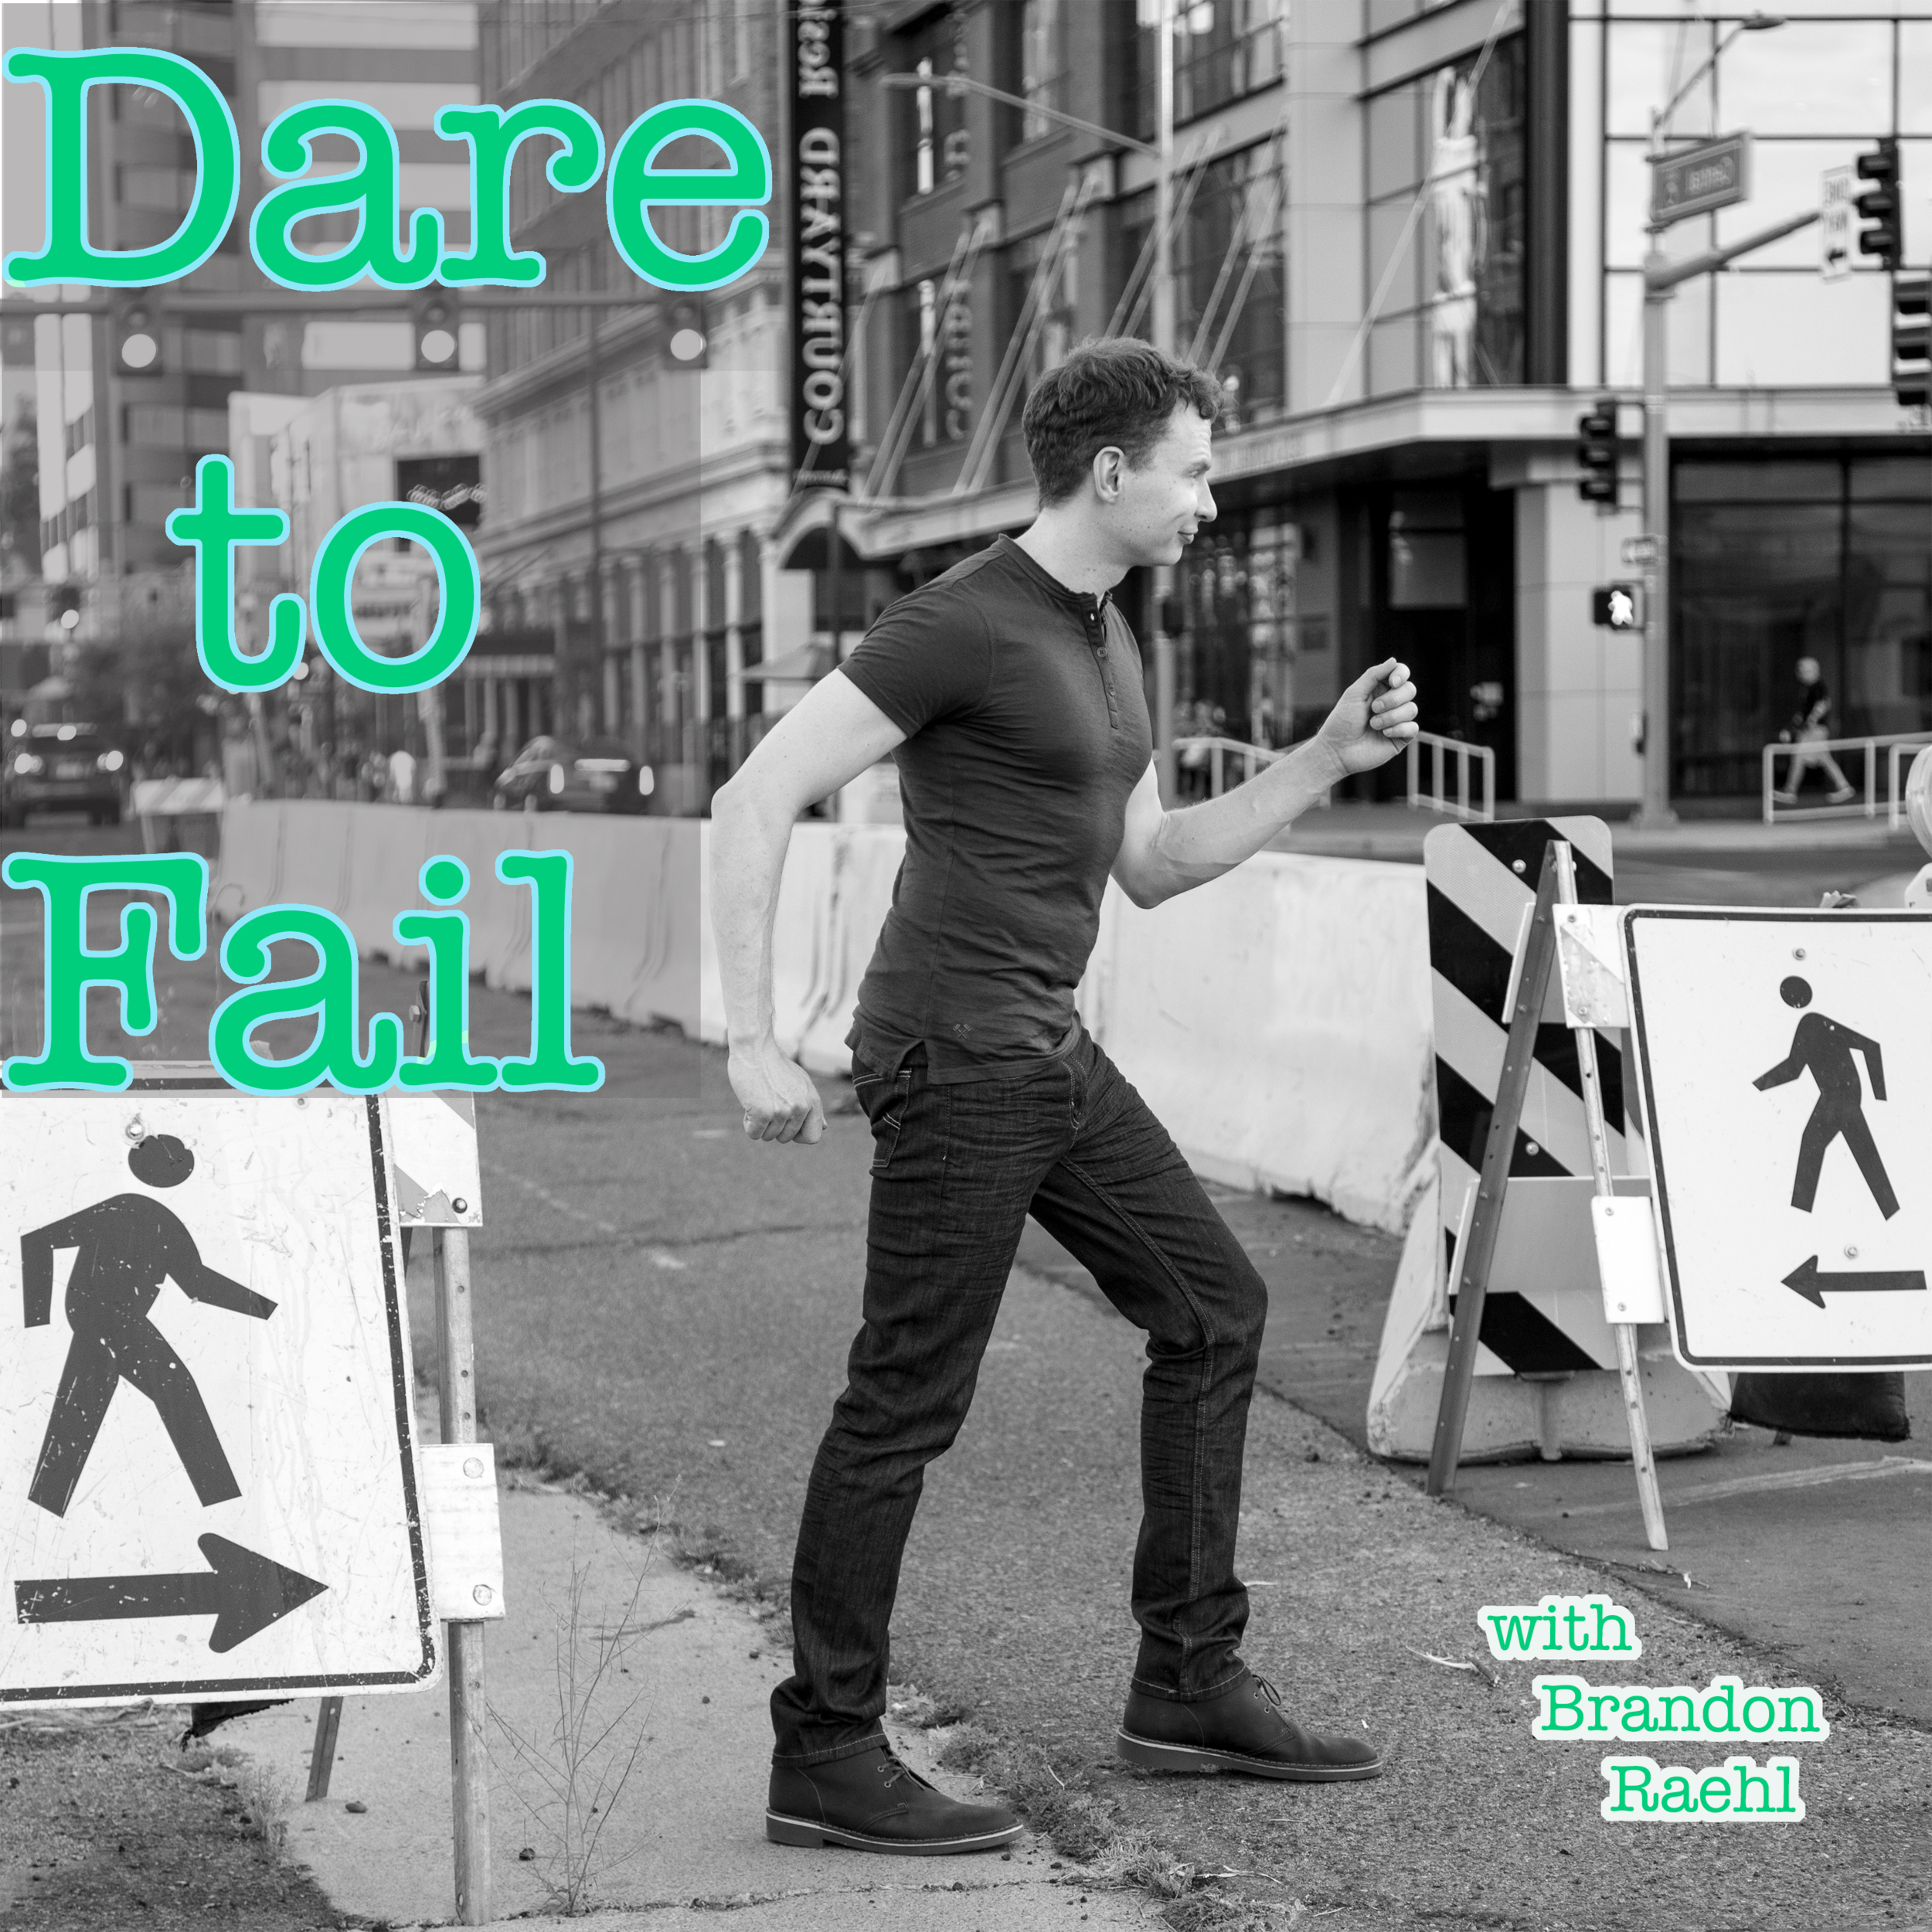 WHAT THE HELL IS THIS? - Welcome to the Dare to Fail Podcast! I don't mean to toot my own horn, but I'm a proud, self-proclaimed expert at the art of failing. That's right—failure. In fact, it's one of my mantras in life: Dare to Fail. When I decided to pursue the life I really wanted for myself, I quickly learned it would only be possible if I was willing to risk failure to learn how to become better. That's what Dare to Fail means, being willing to risk the rejection, hardship and failure in life to do what you want to do. This podcast is dedicated to those on that journey.